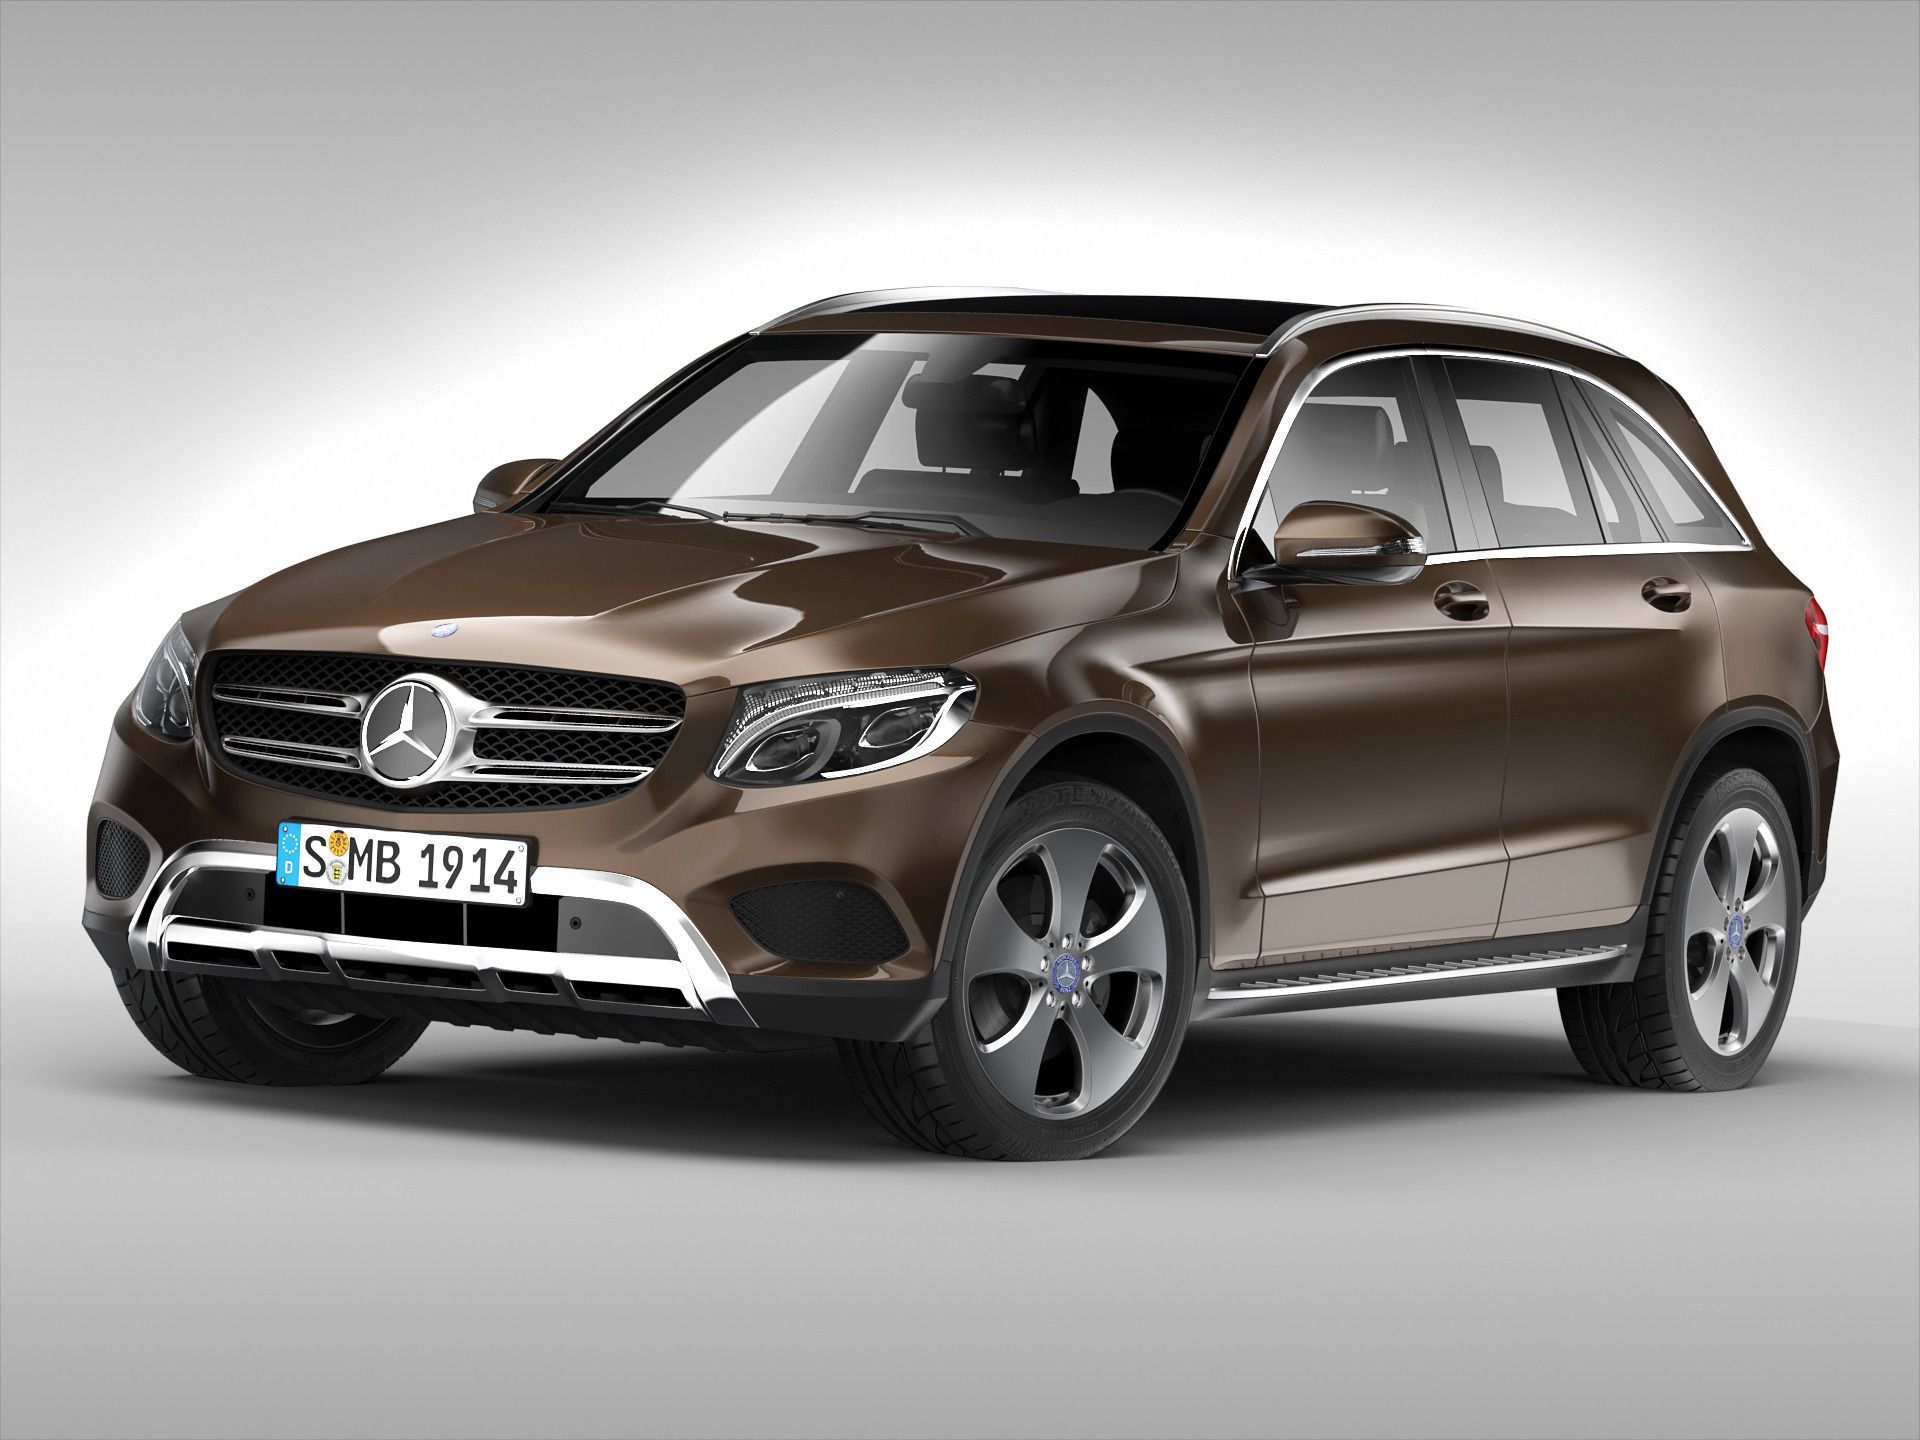 Mercedes Benz Glc Class 2016 3d Model Max Obj 3ds Fbx